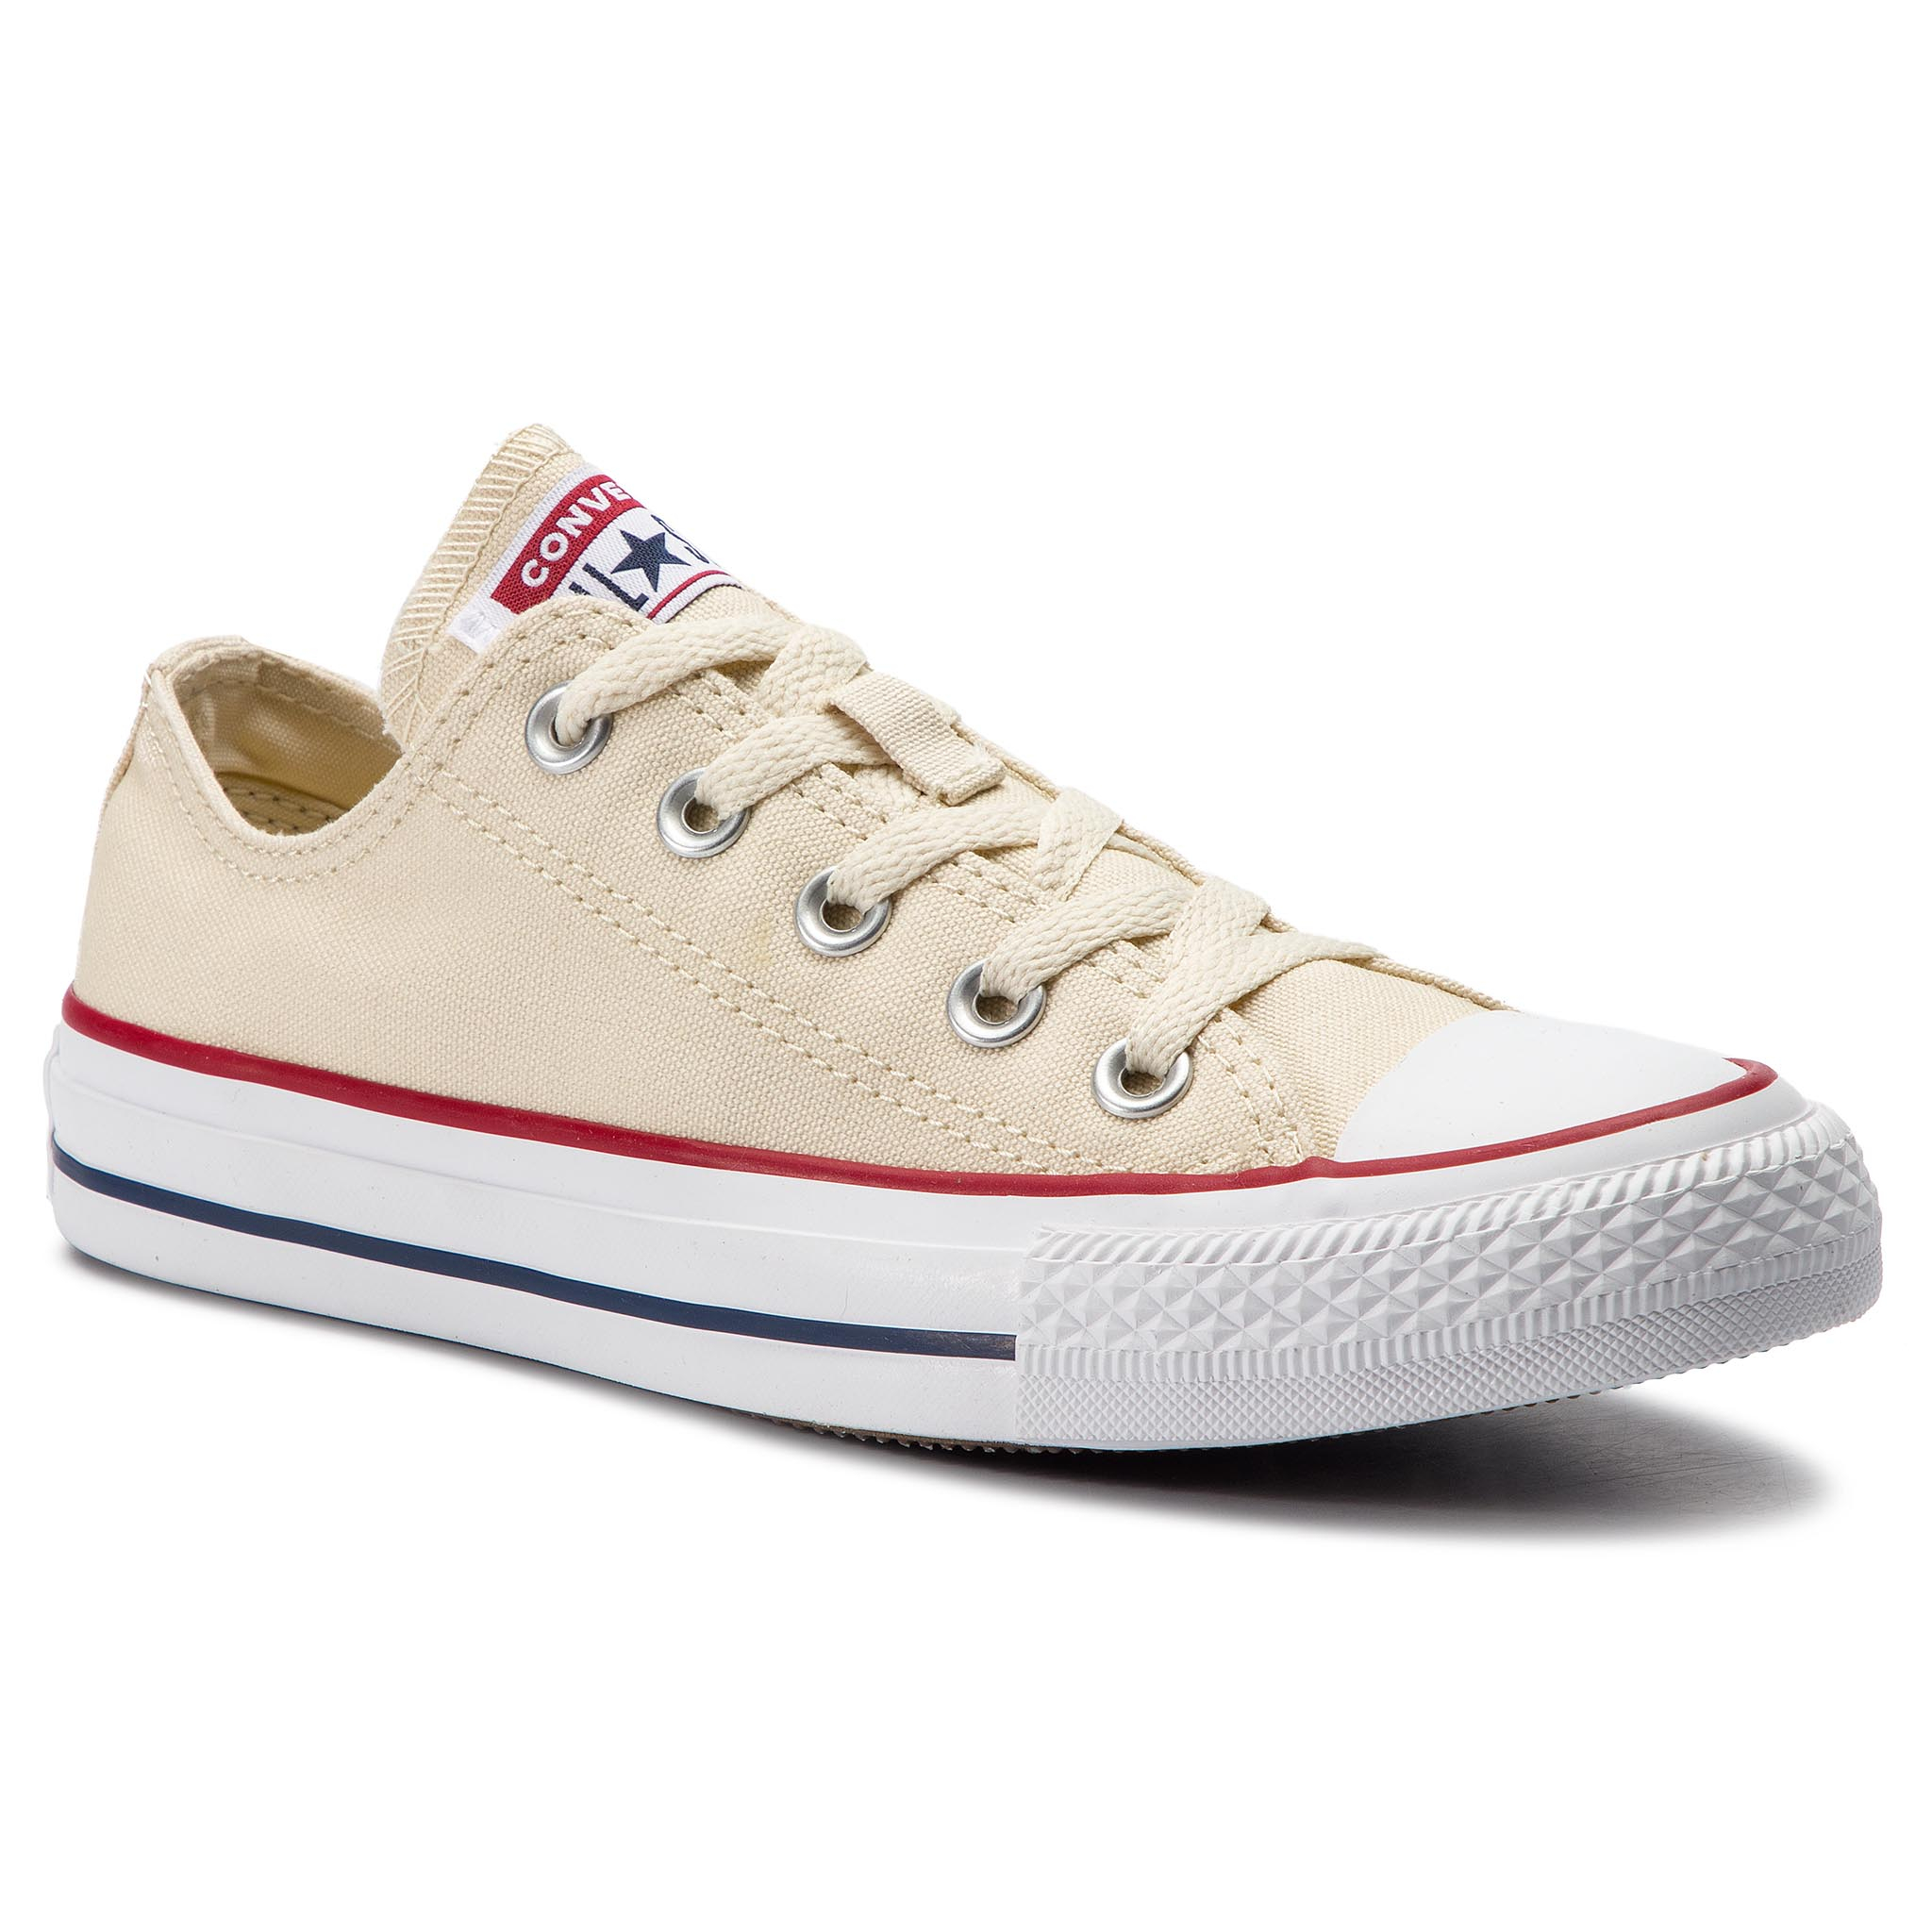 Teniși Converse - Ctas Ox 159485c Natural Ivory imagine epantofi.ro 2021